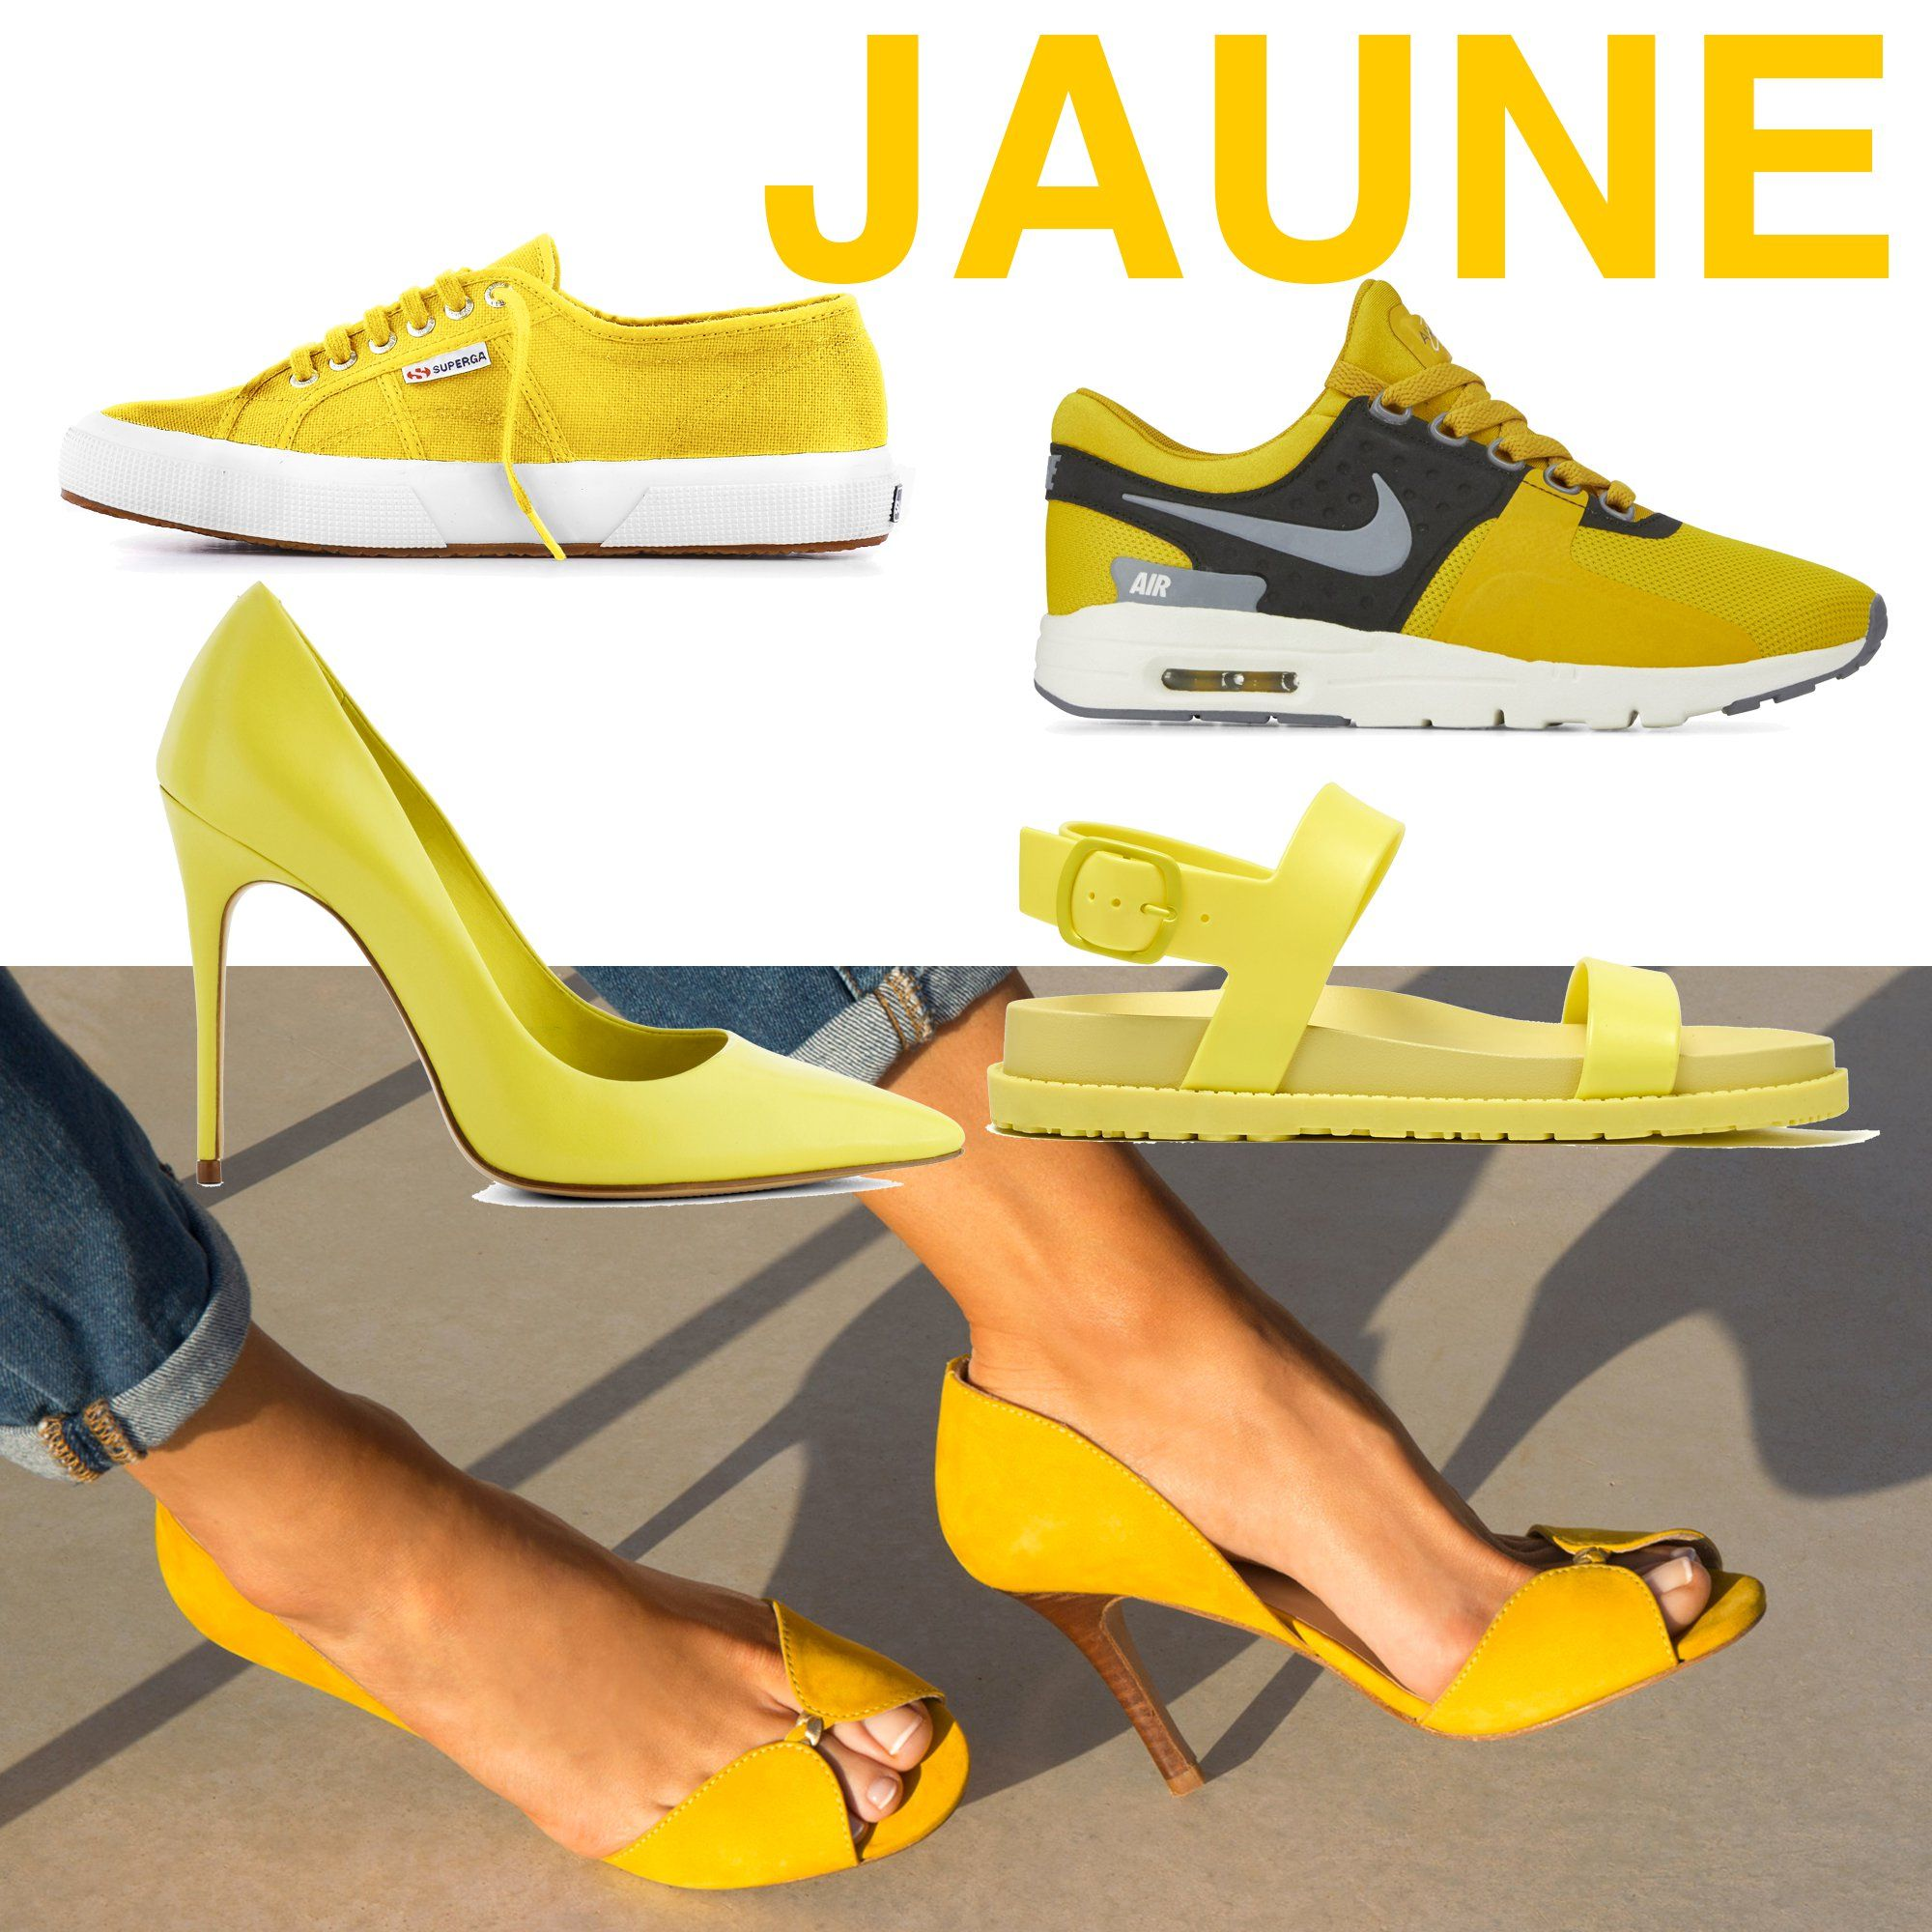 chaussures printemps t 2017 d cryptage des tendances chaussure printemps t 2017 et jaune. Black Bedroom Furniture Sets. Home Design Ideas